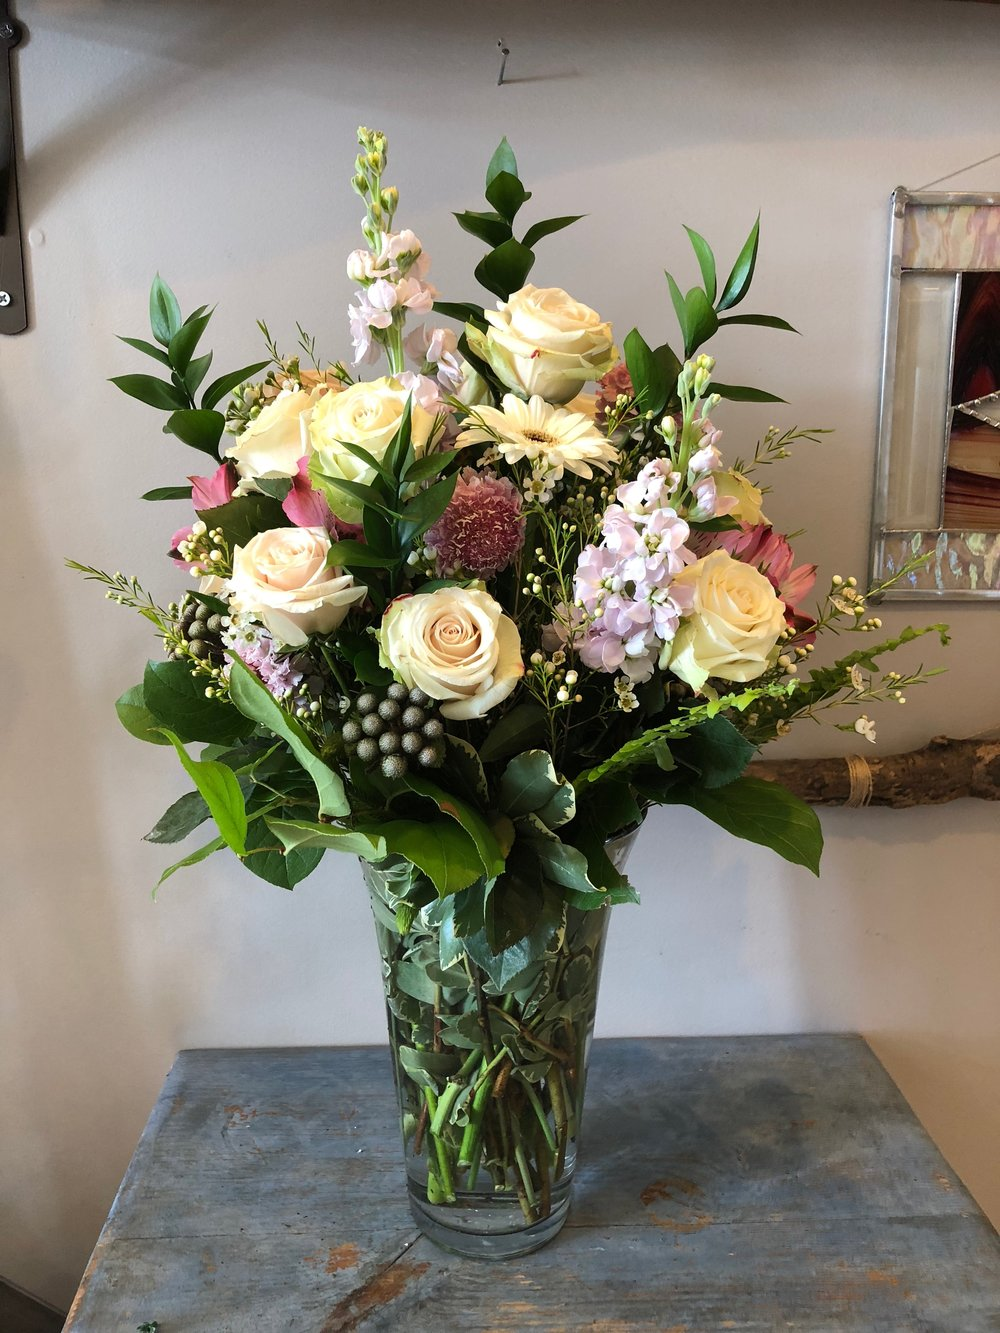 Premium - Seasonal mix of florals in your choice of taller vase.$80-125*Pictured arrangement - $125